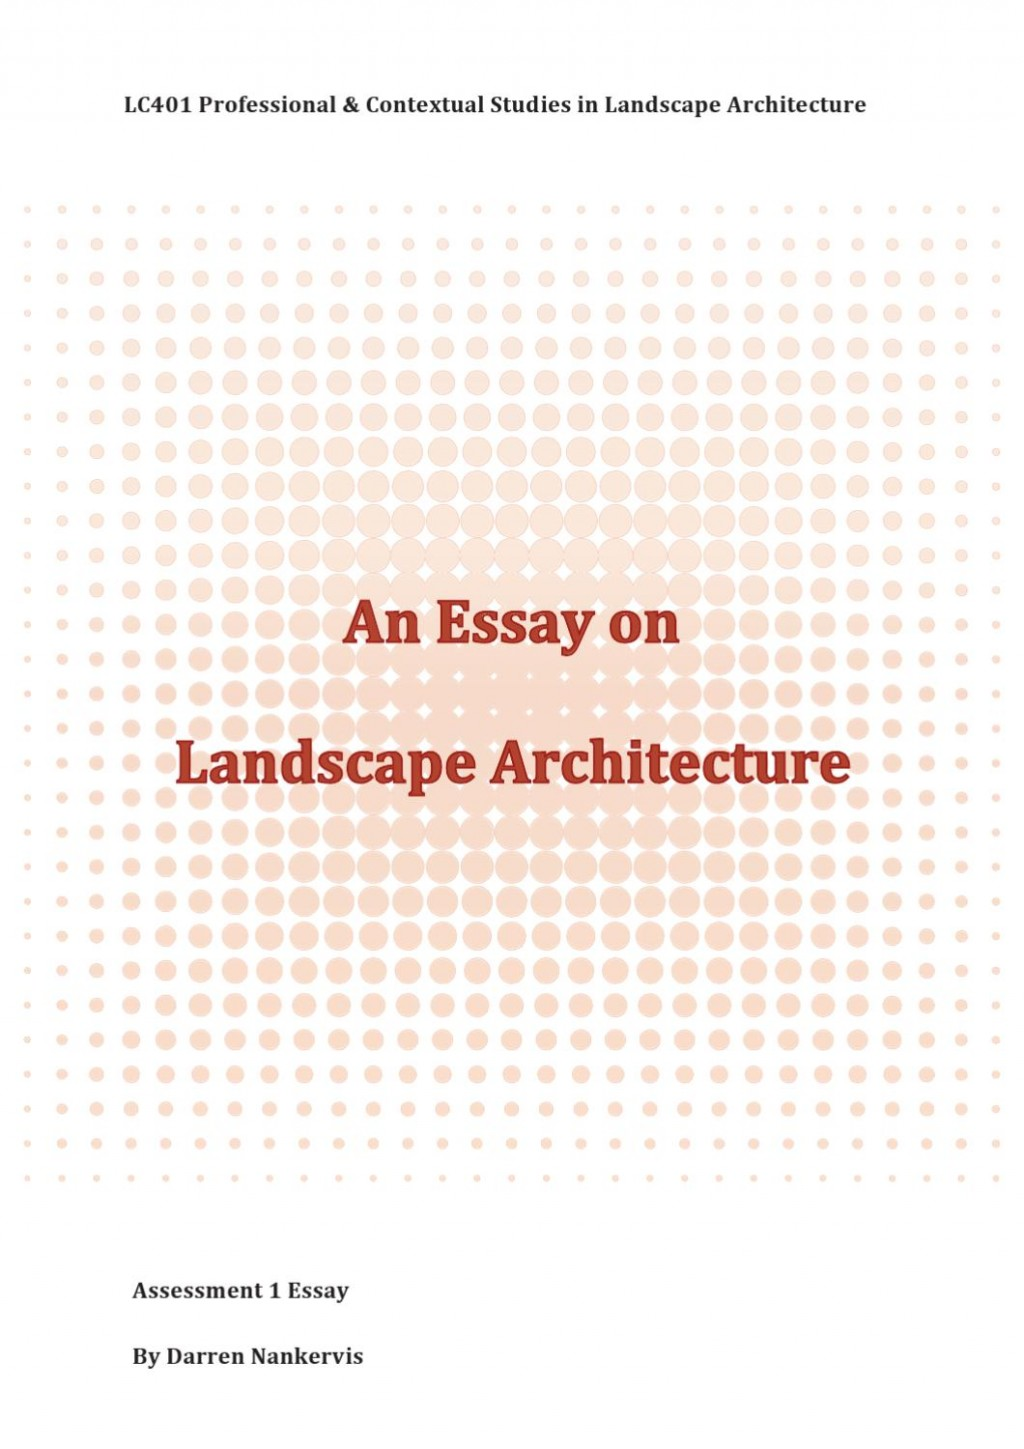 007 Landscape Architecture Essay Example Page 1 Stunning College Argumentative Large